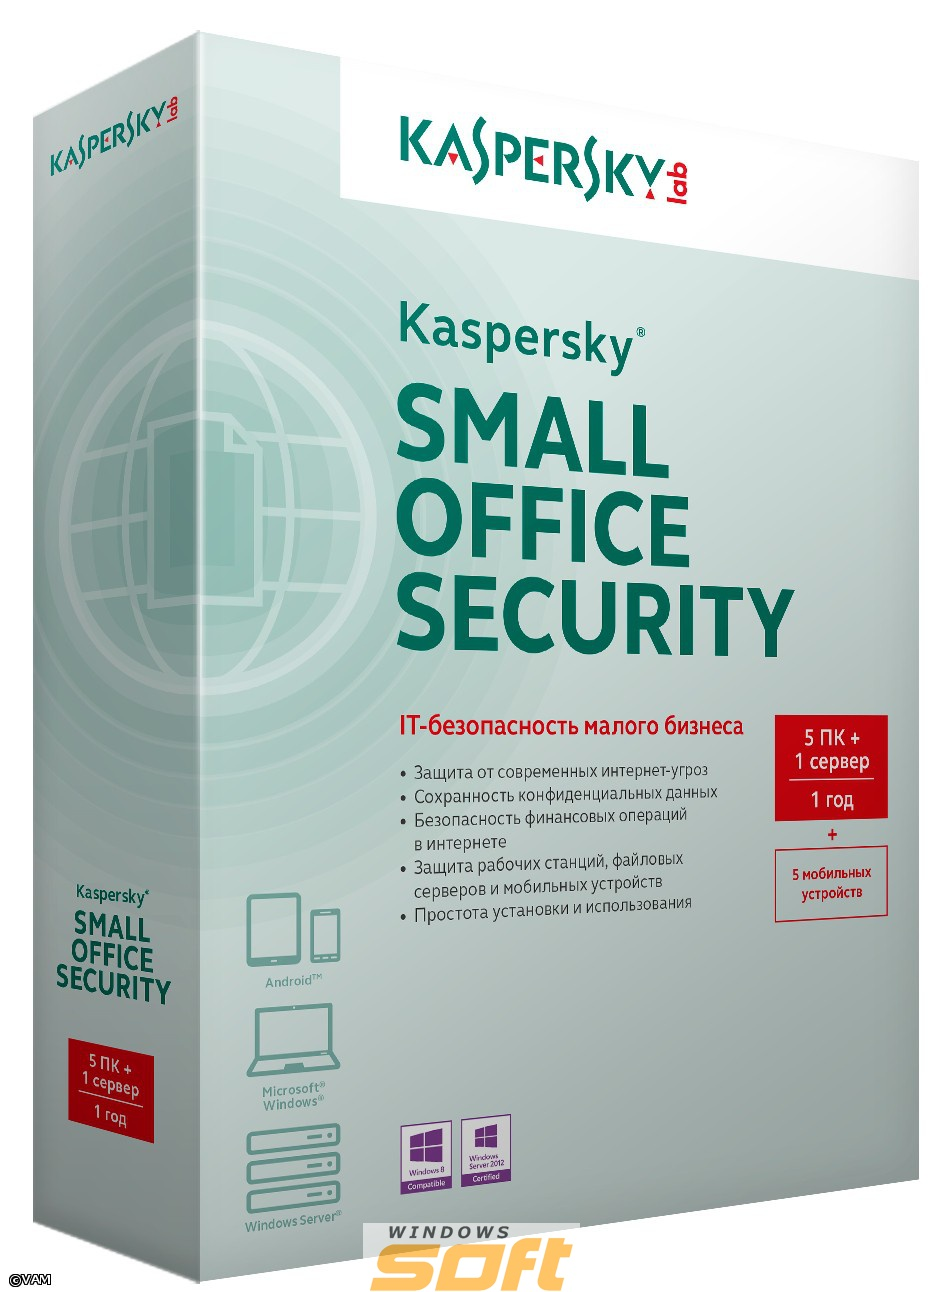 ������ Kaspersky Small Office Security (5-24 �� + 5-24 ��������� ��������� + 1-2 �������) KL4532RA*FS �� ��������� ����